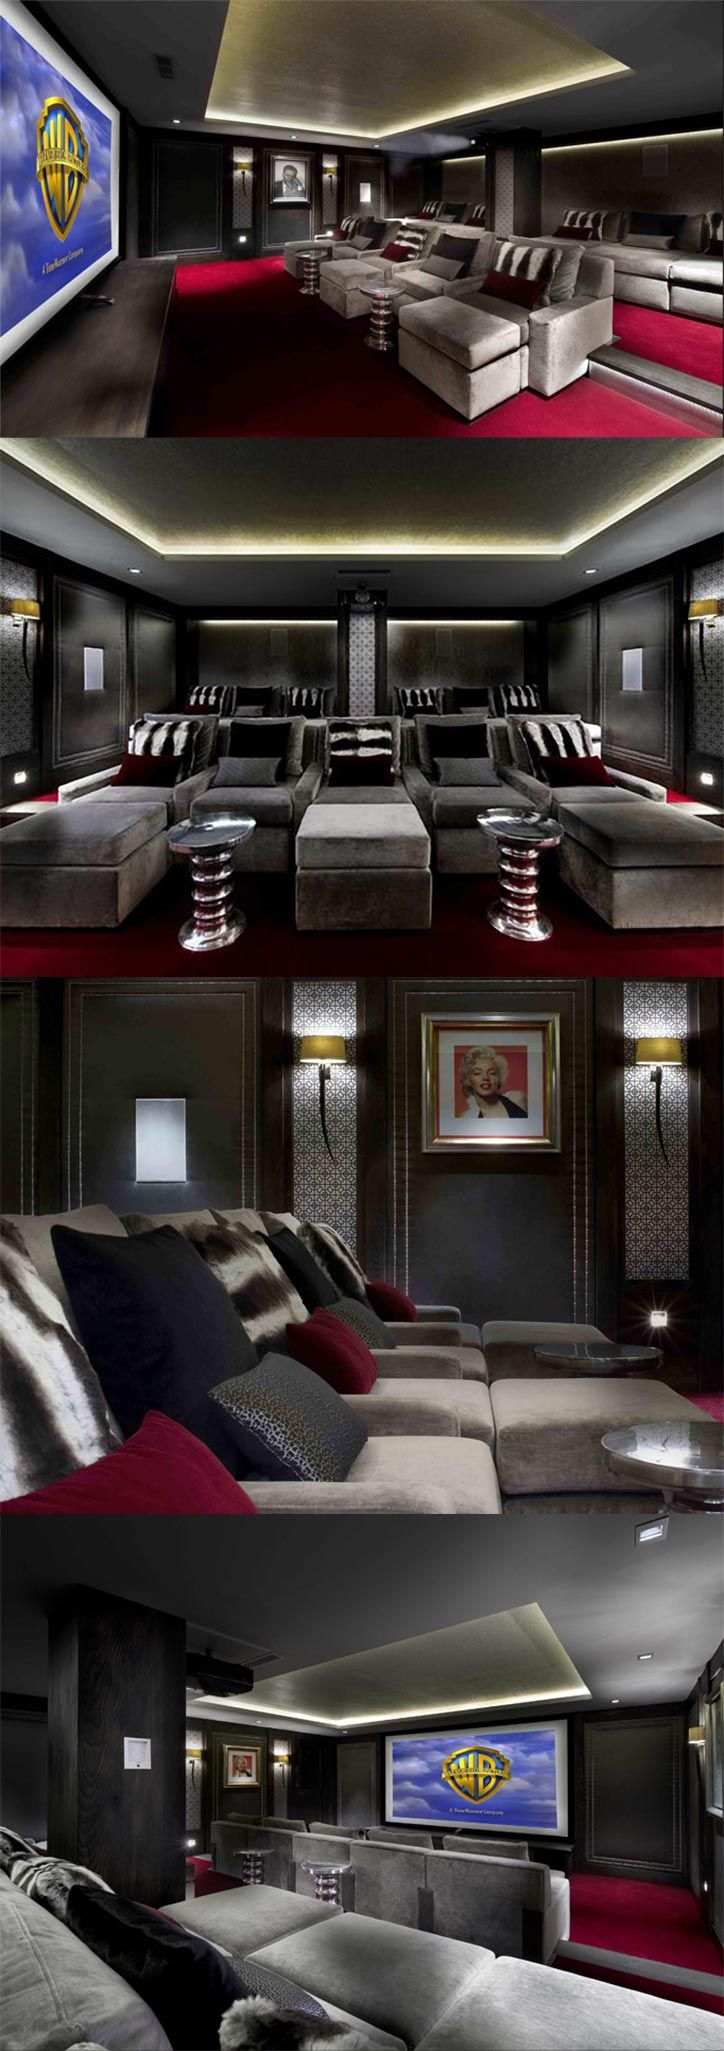 home theater mart is a premiere source of high quality home theater decor seating - Home Cinema Decor